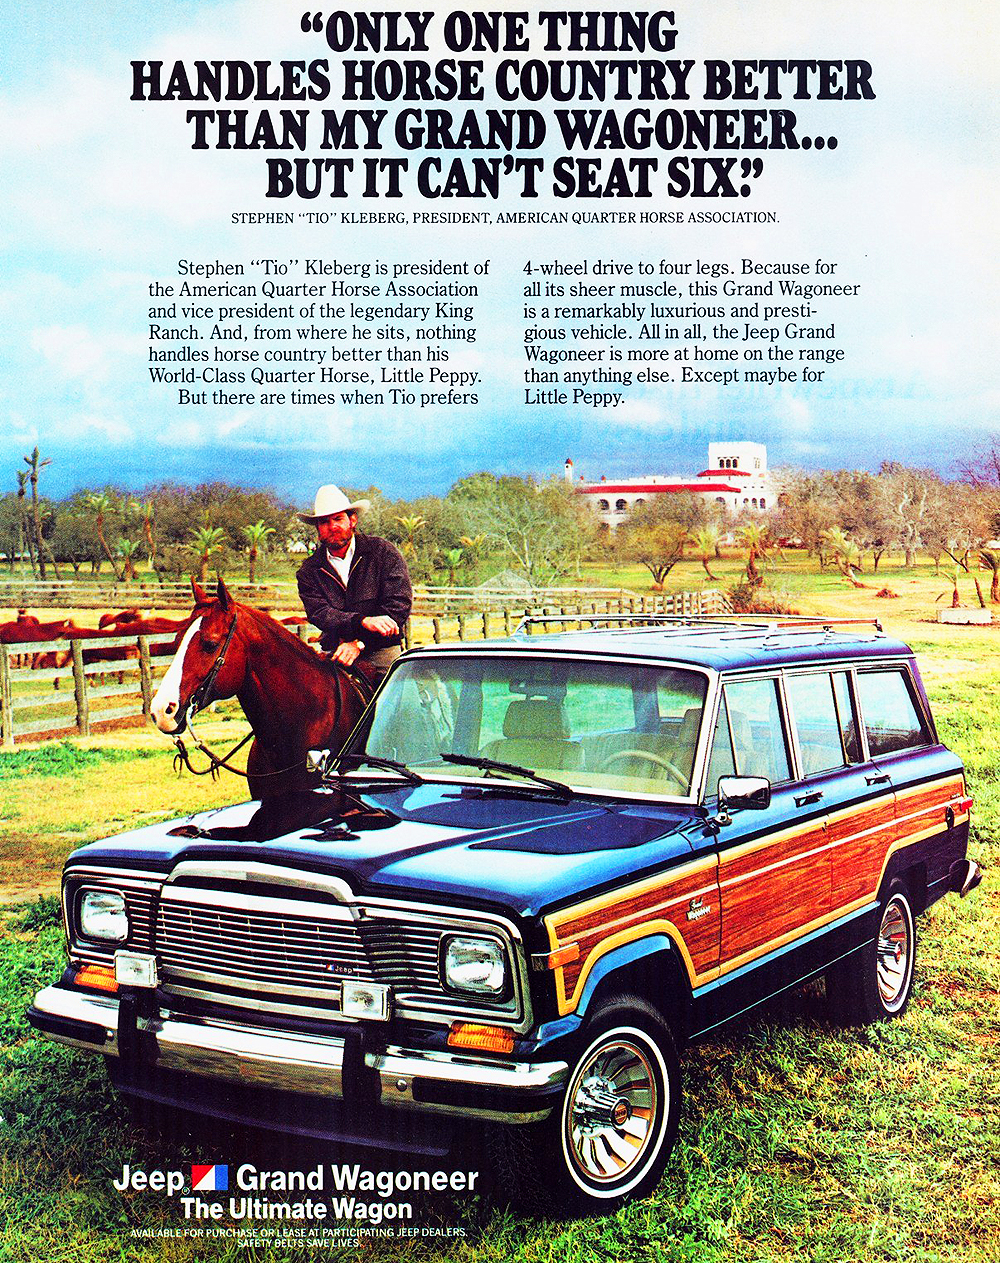 Jeep Grand Wagoneer >> These things were popular 30 years ago   TigerDroppings.com